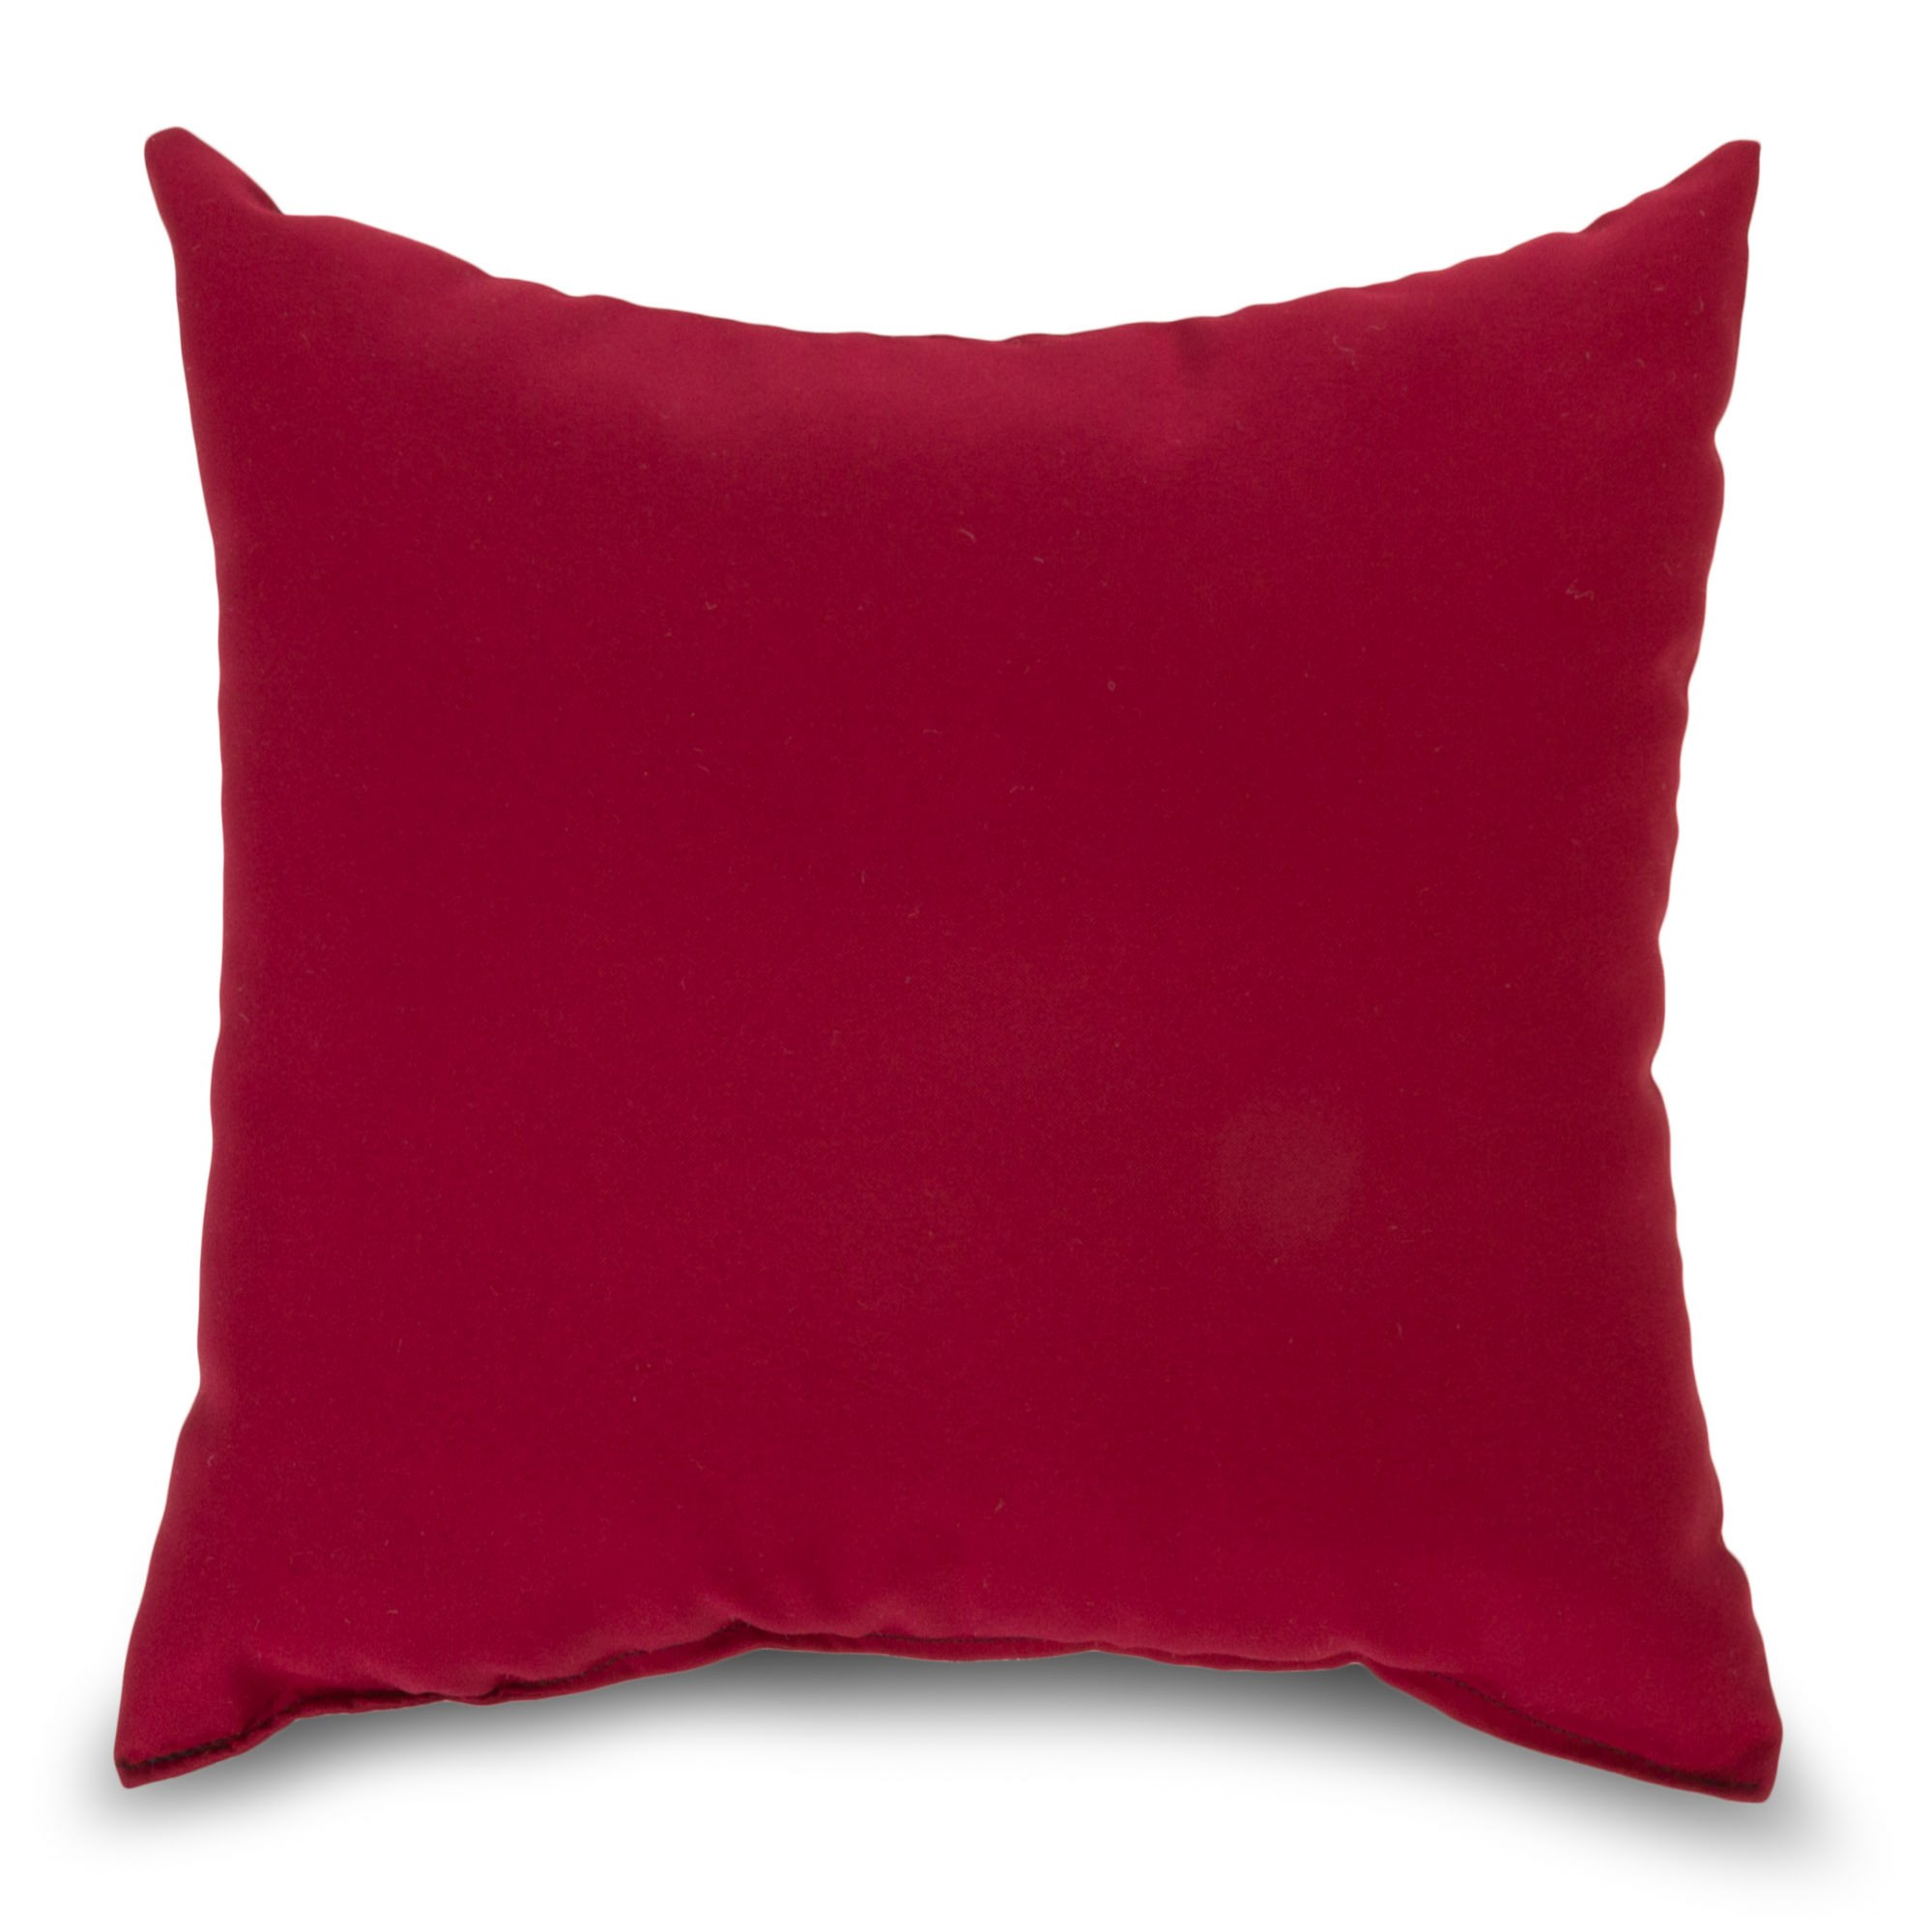 Throw Pillows For Burgundy Couch : Burgundy Outdoor Throw Pillow DFOHome